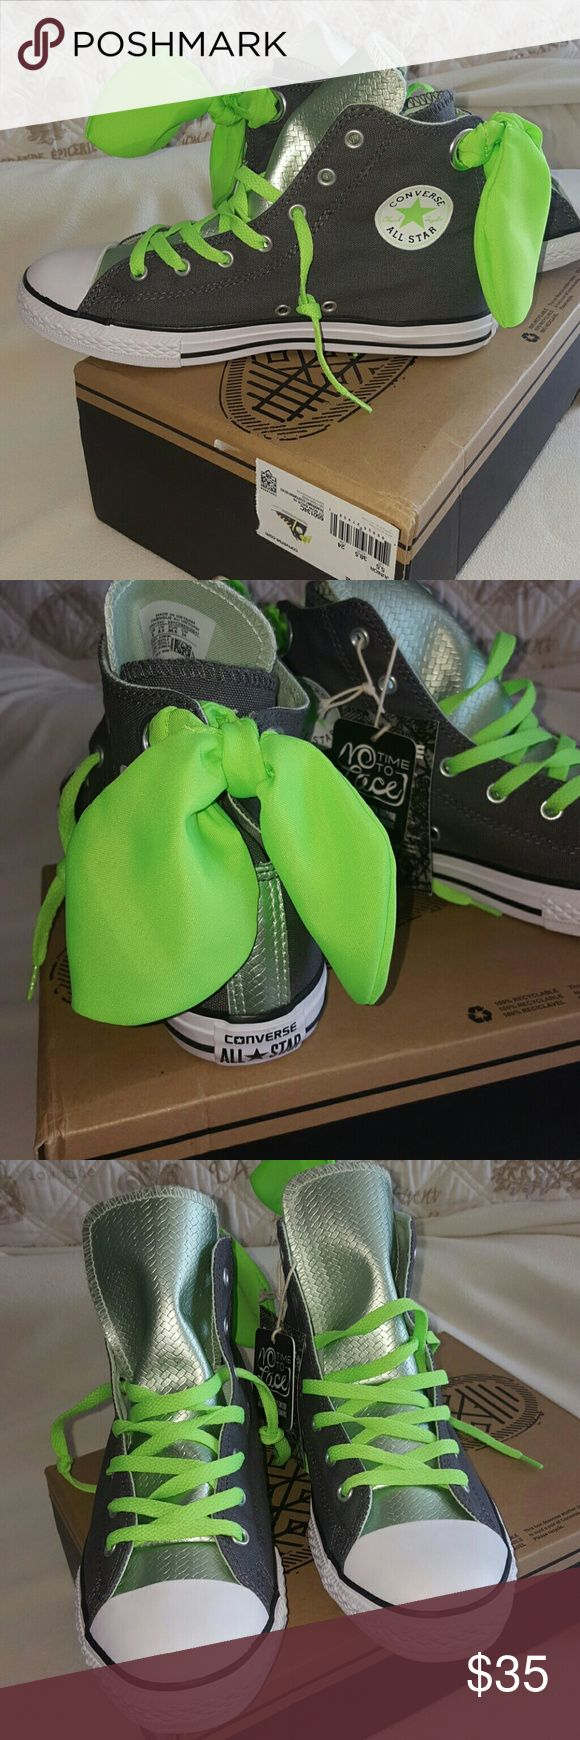 Converse NWT converse dark grey, silver and neon green. Super cute!!! Converse Shoes Sneakers